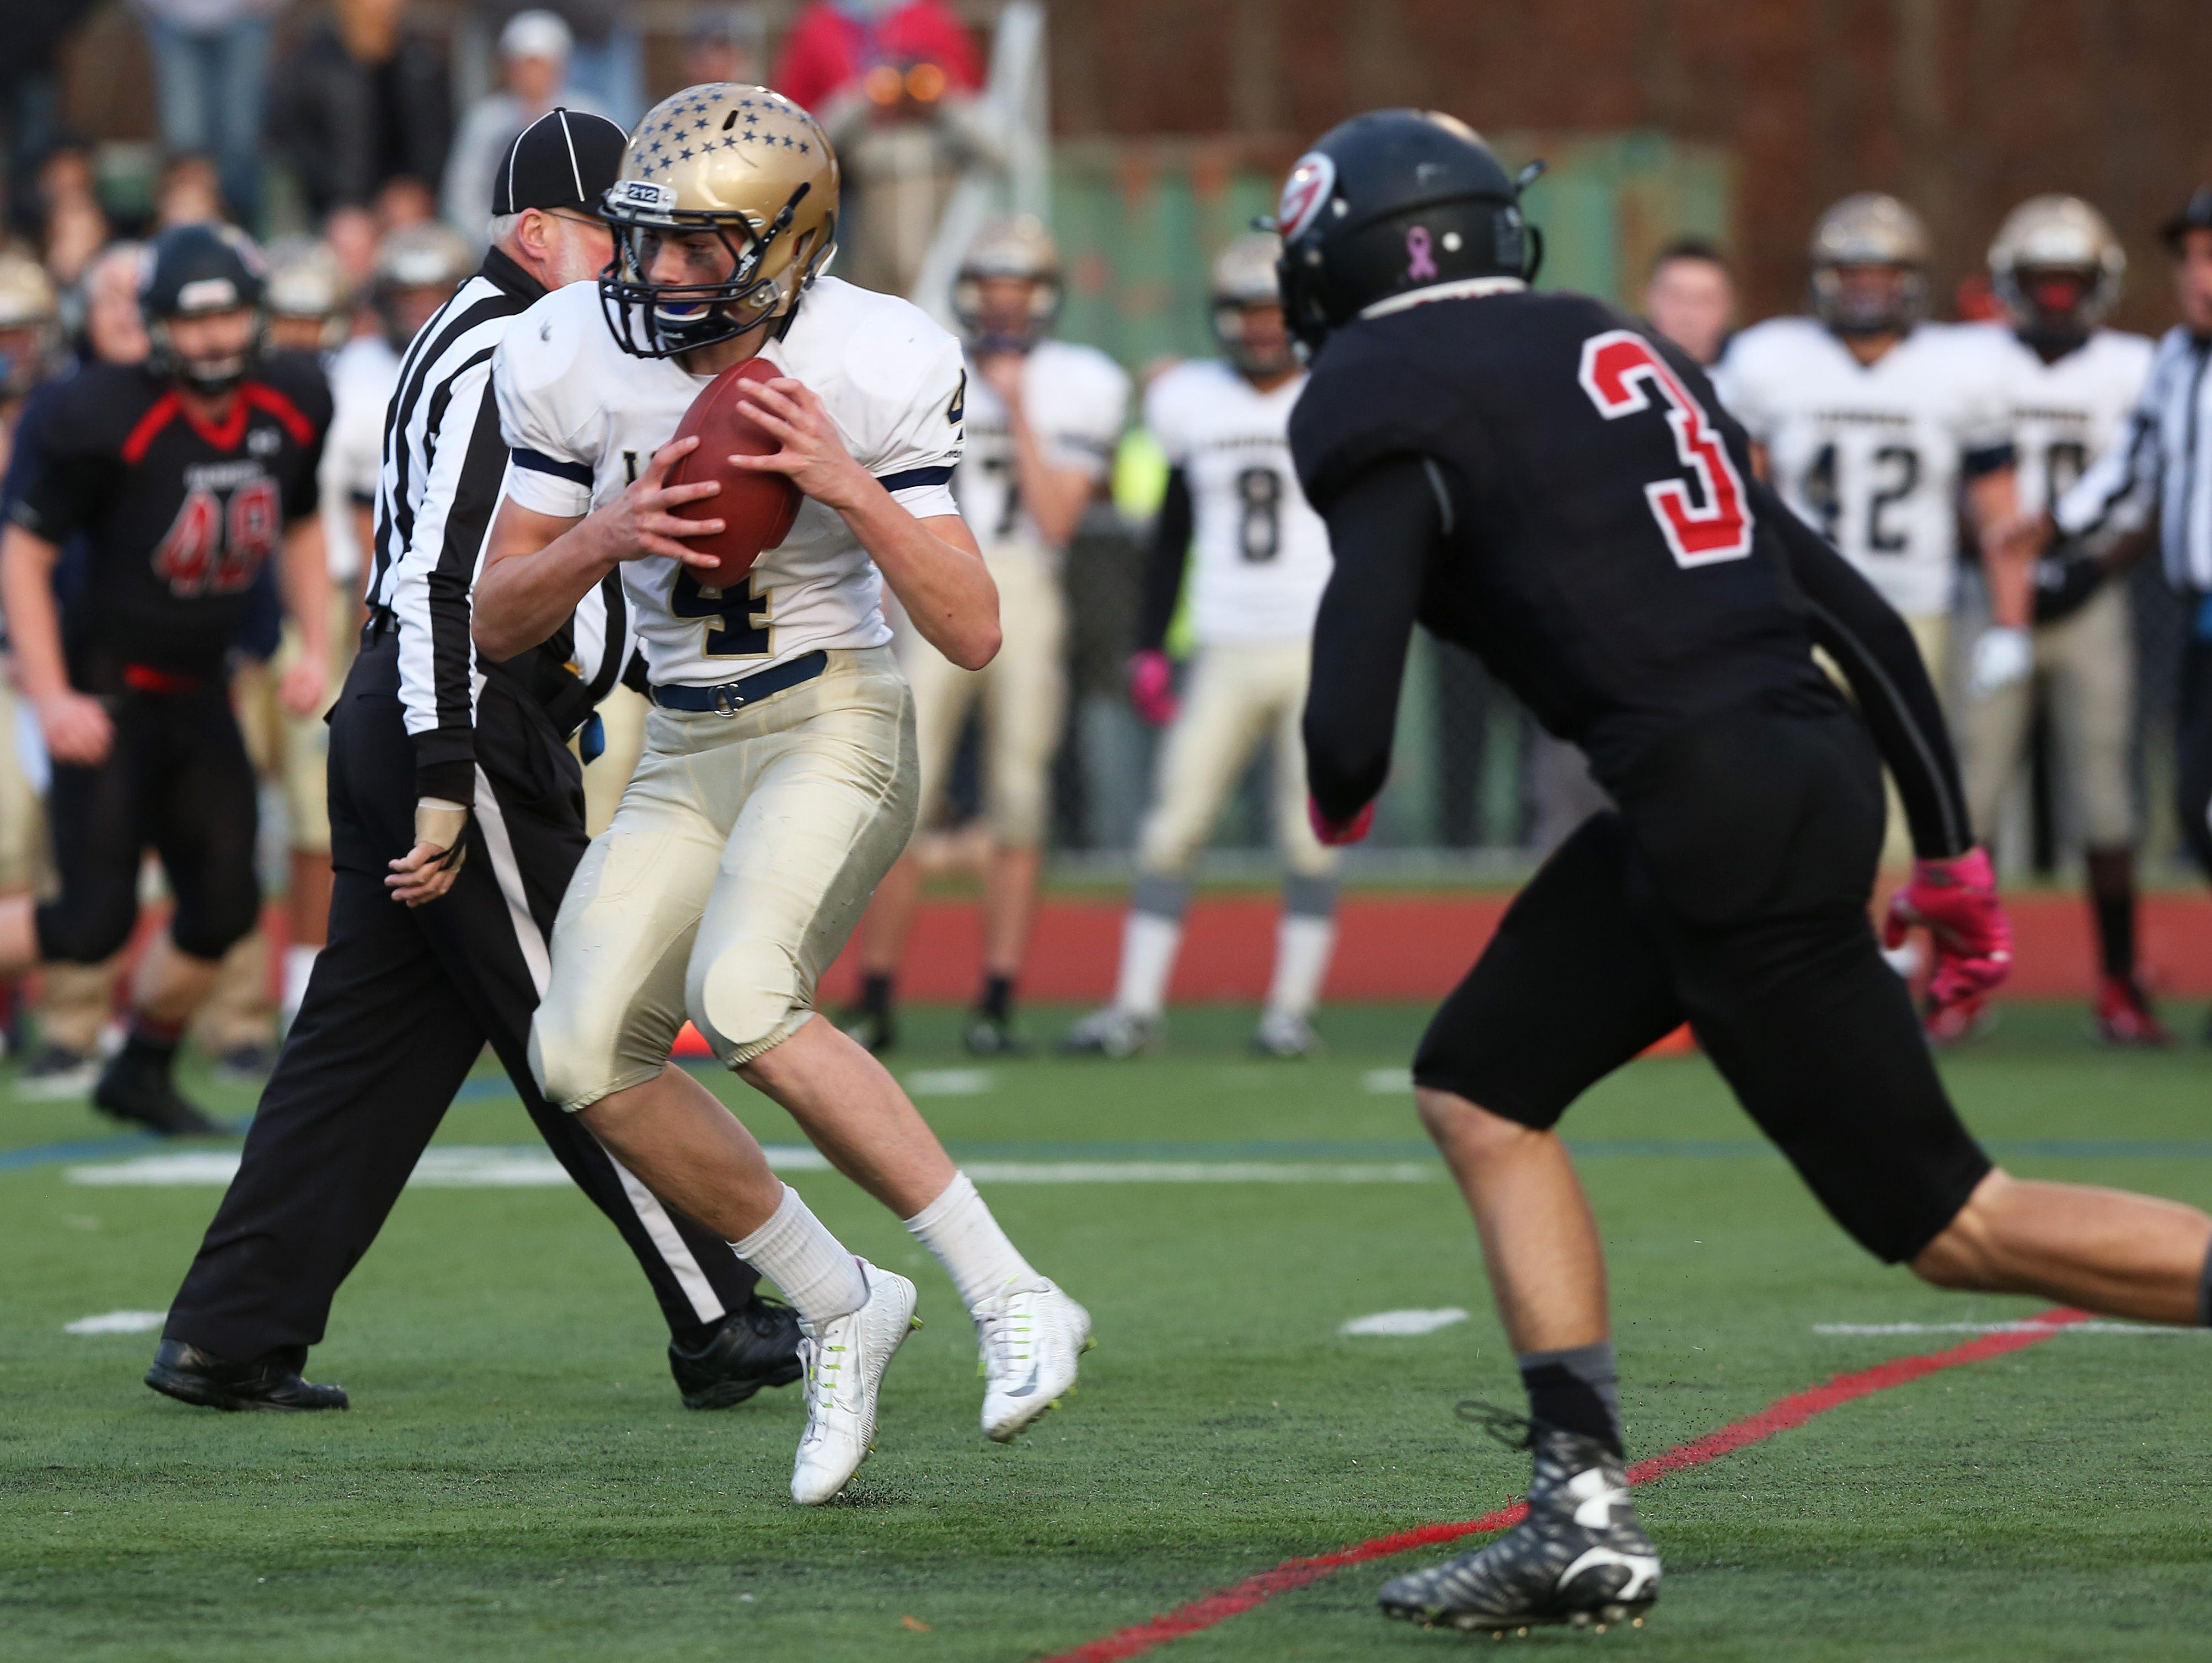 Lourdes defeated Rye 14-7 in the Section 1 Class A championship football game at Arlington High School Nov 7, 2015.